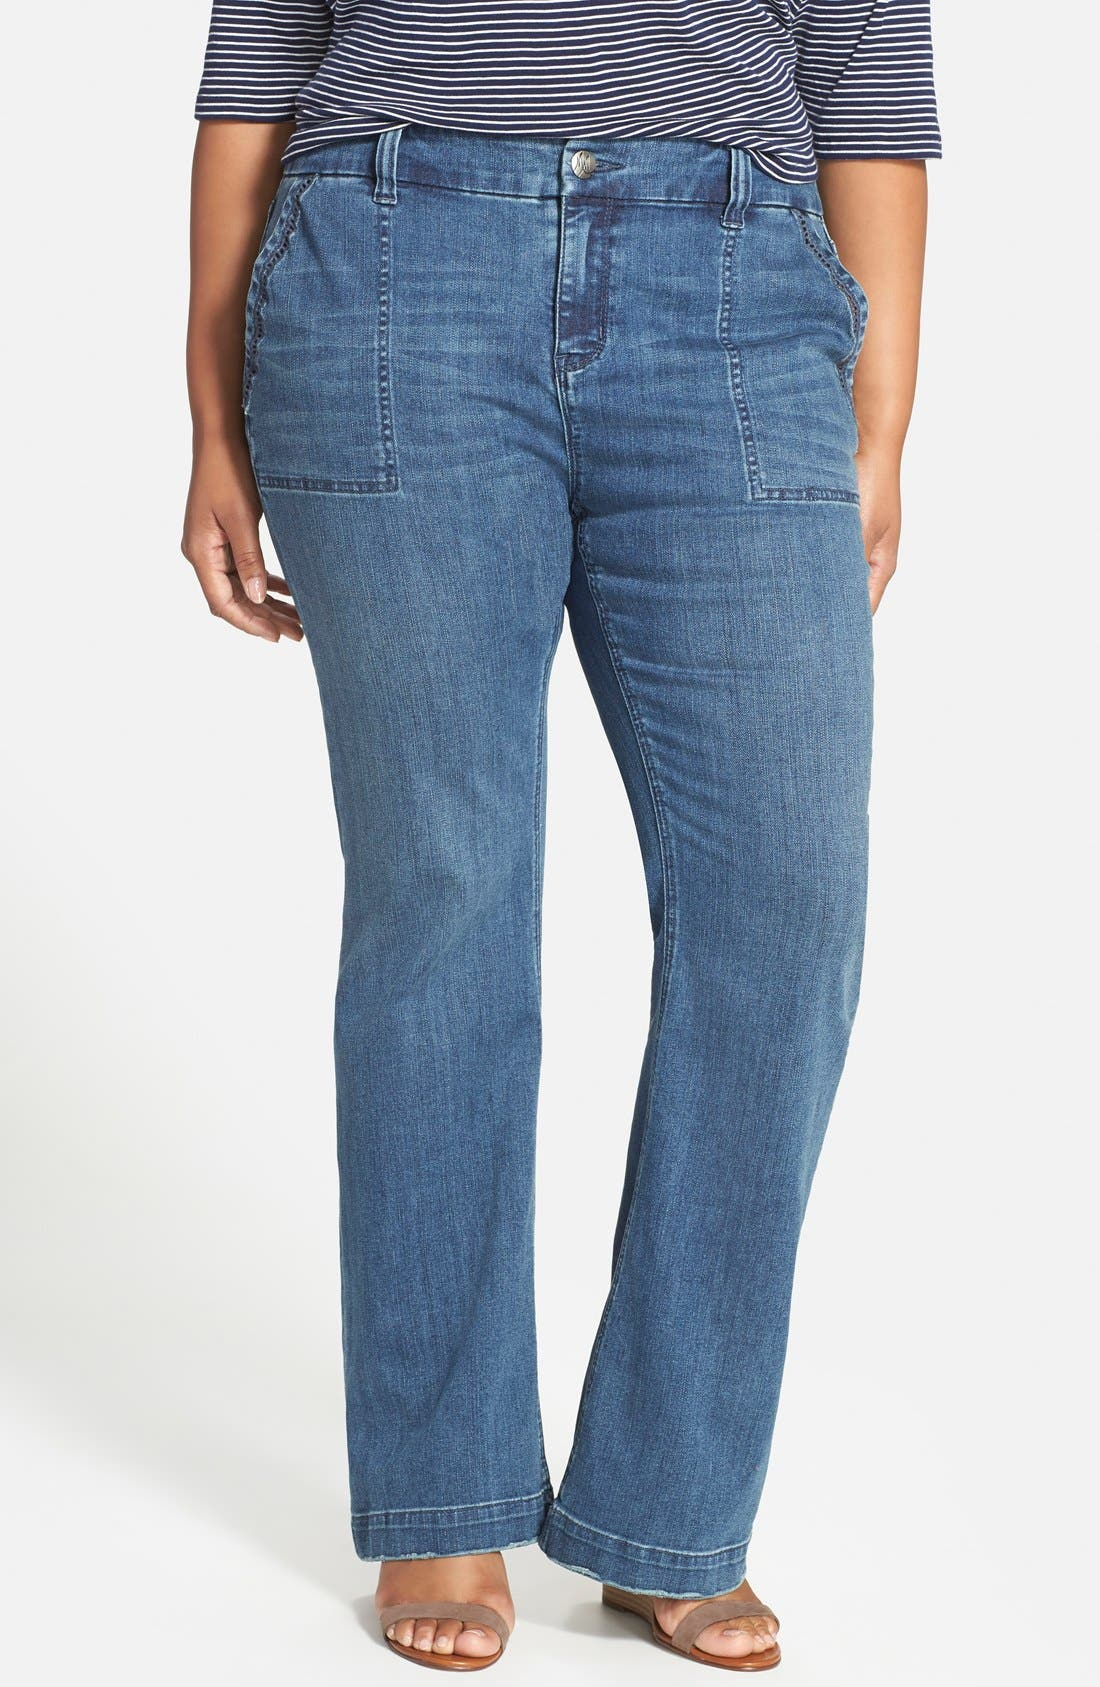 Alternate Image 1 Selected - Melissa McCarthy Seven7 Stretch Flare Leg Jeans (Deluxe Blue) (Plus Size)